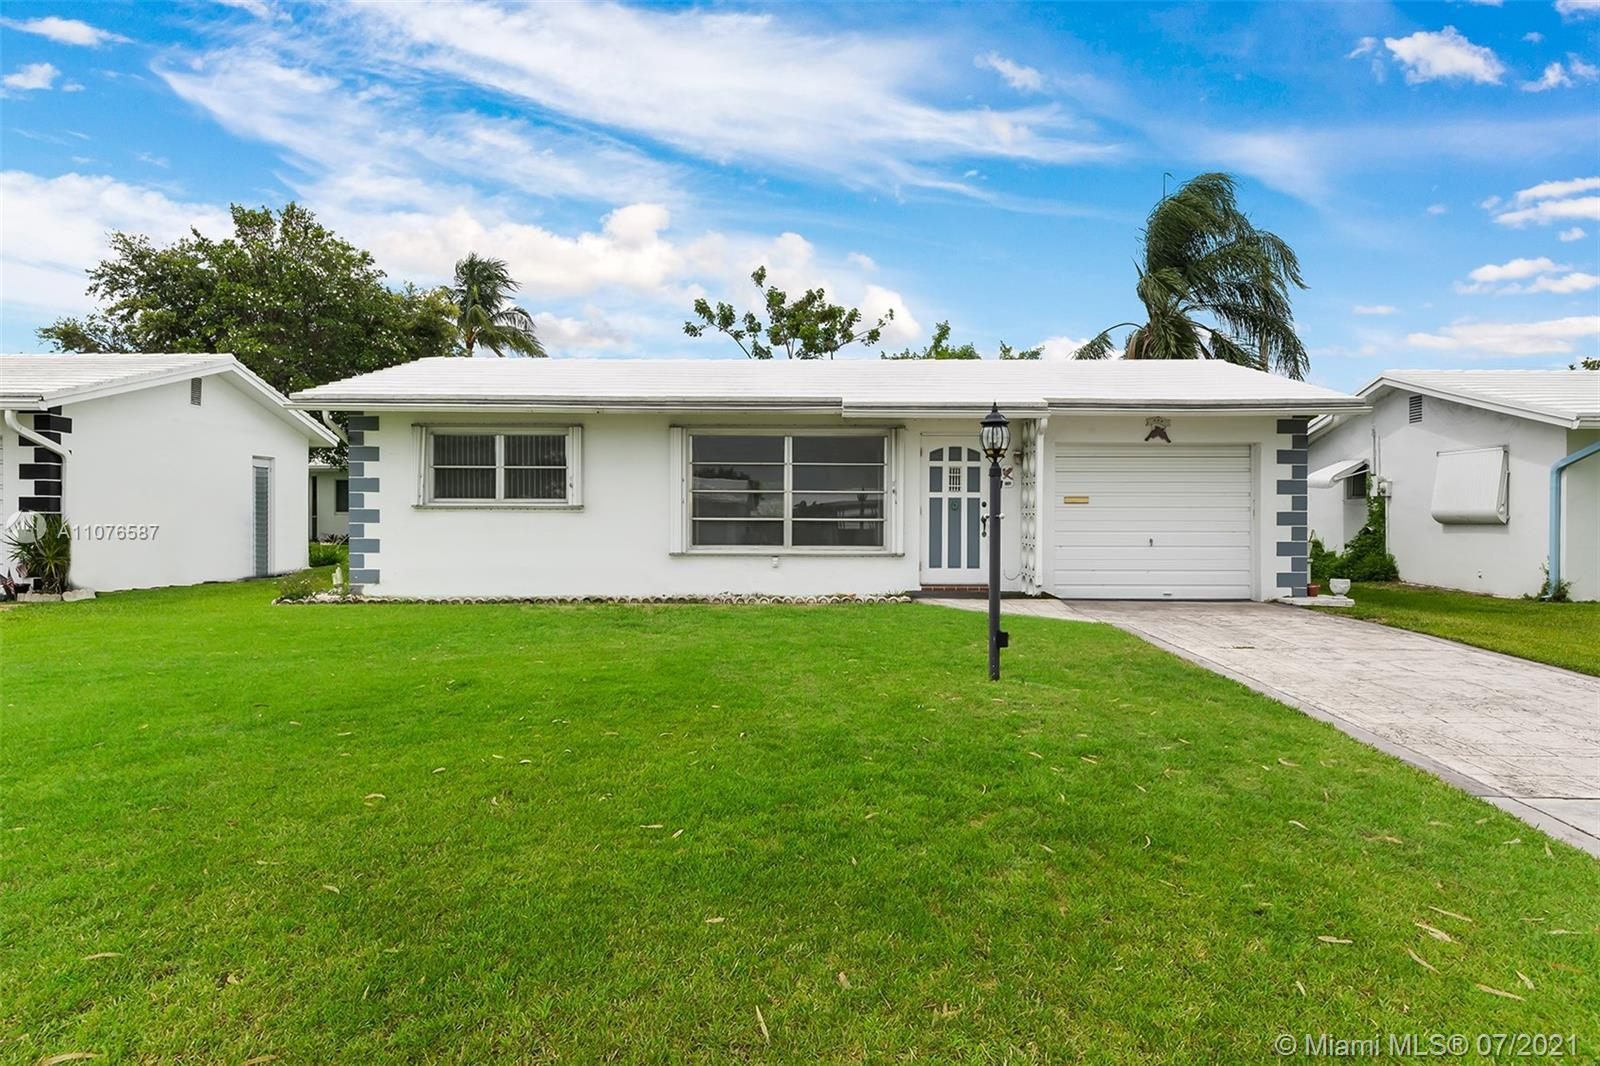 AMAZING, RARELY AVAILABLE 3 BEDROOM, 2 FULL BATH SINGLE FAMILY HOME IN BEAUTIFUL 55+ LEISUREVILLE CO